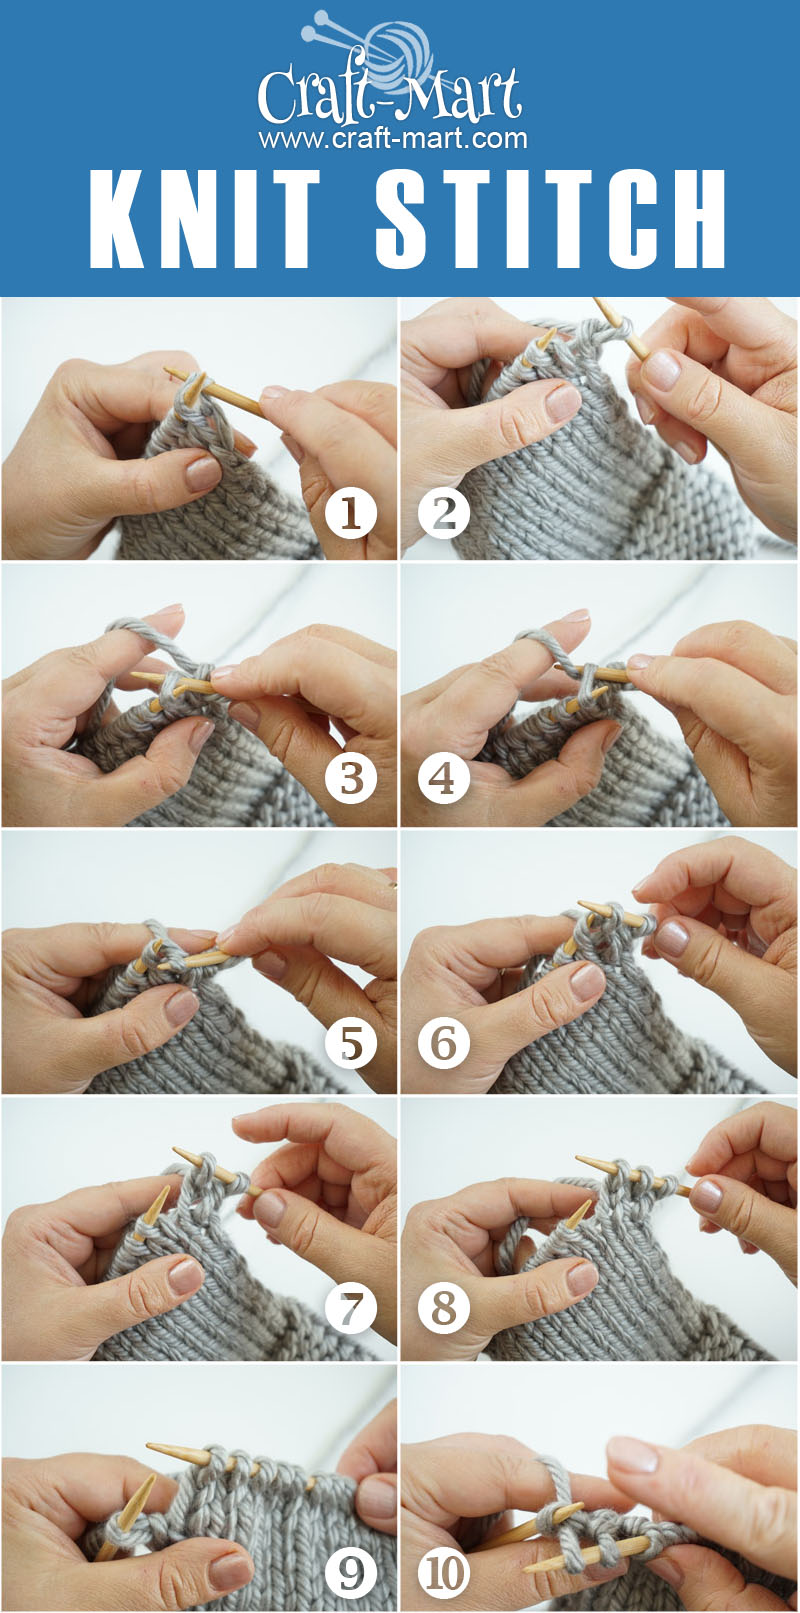 knit stitch step-by-step photo tutorial of basic knitting stitch for beginners